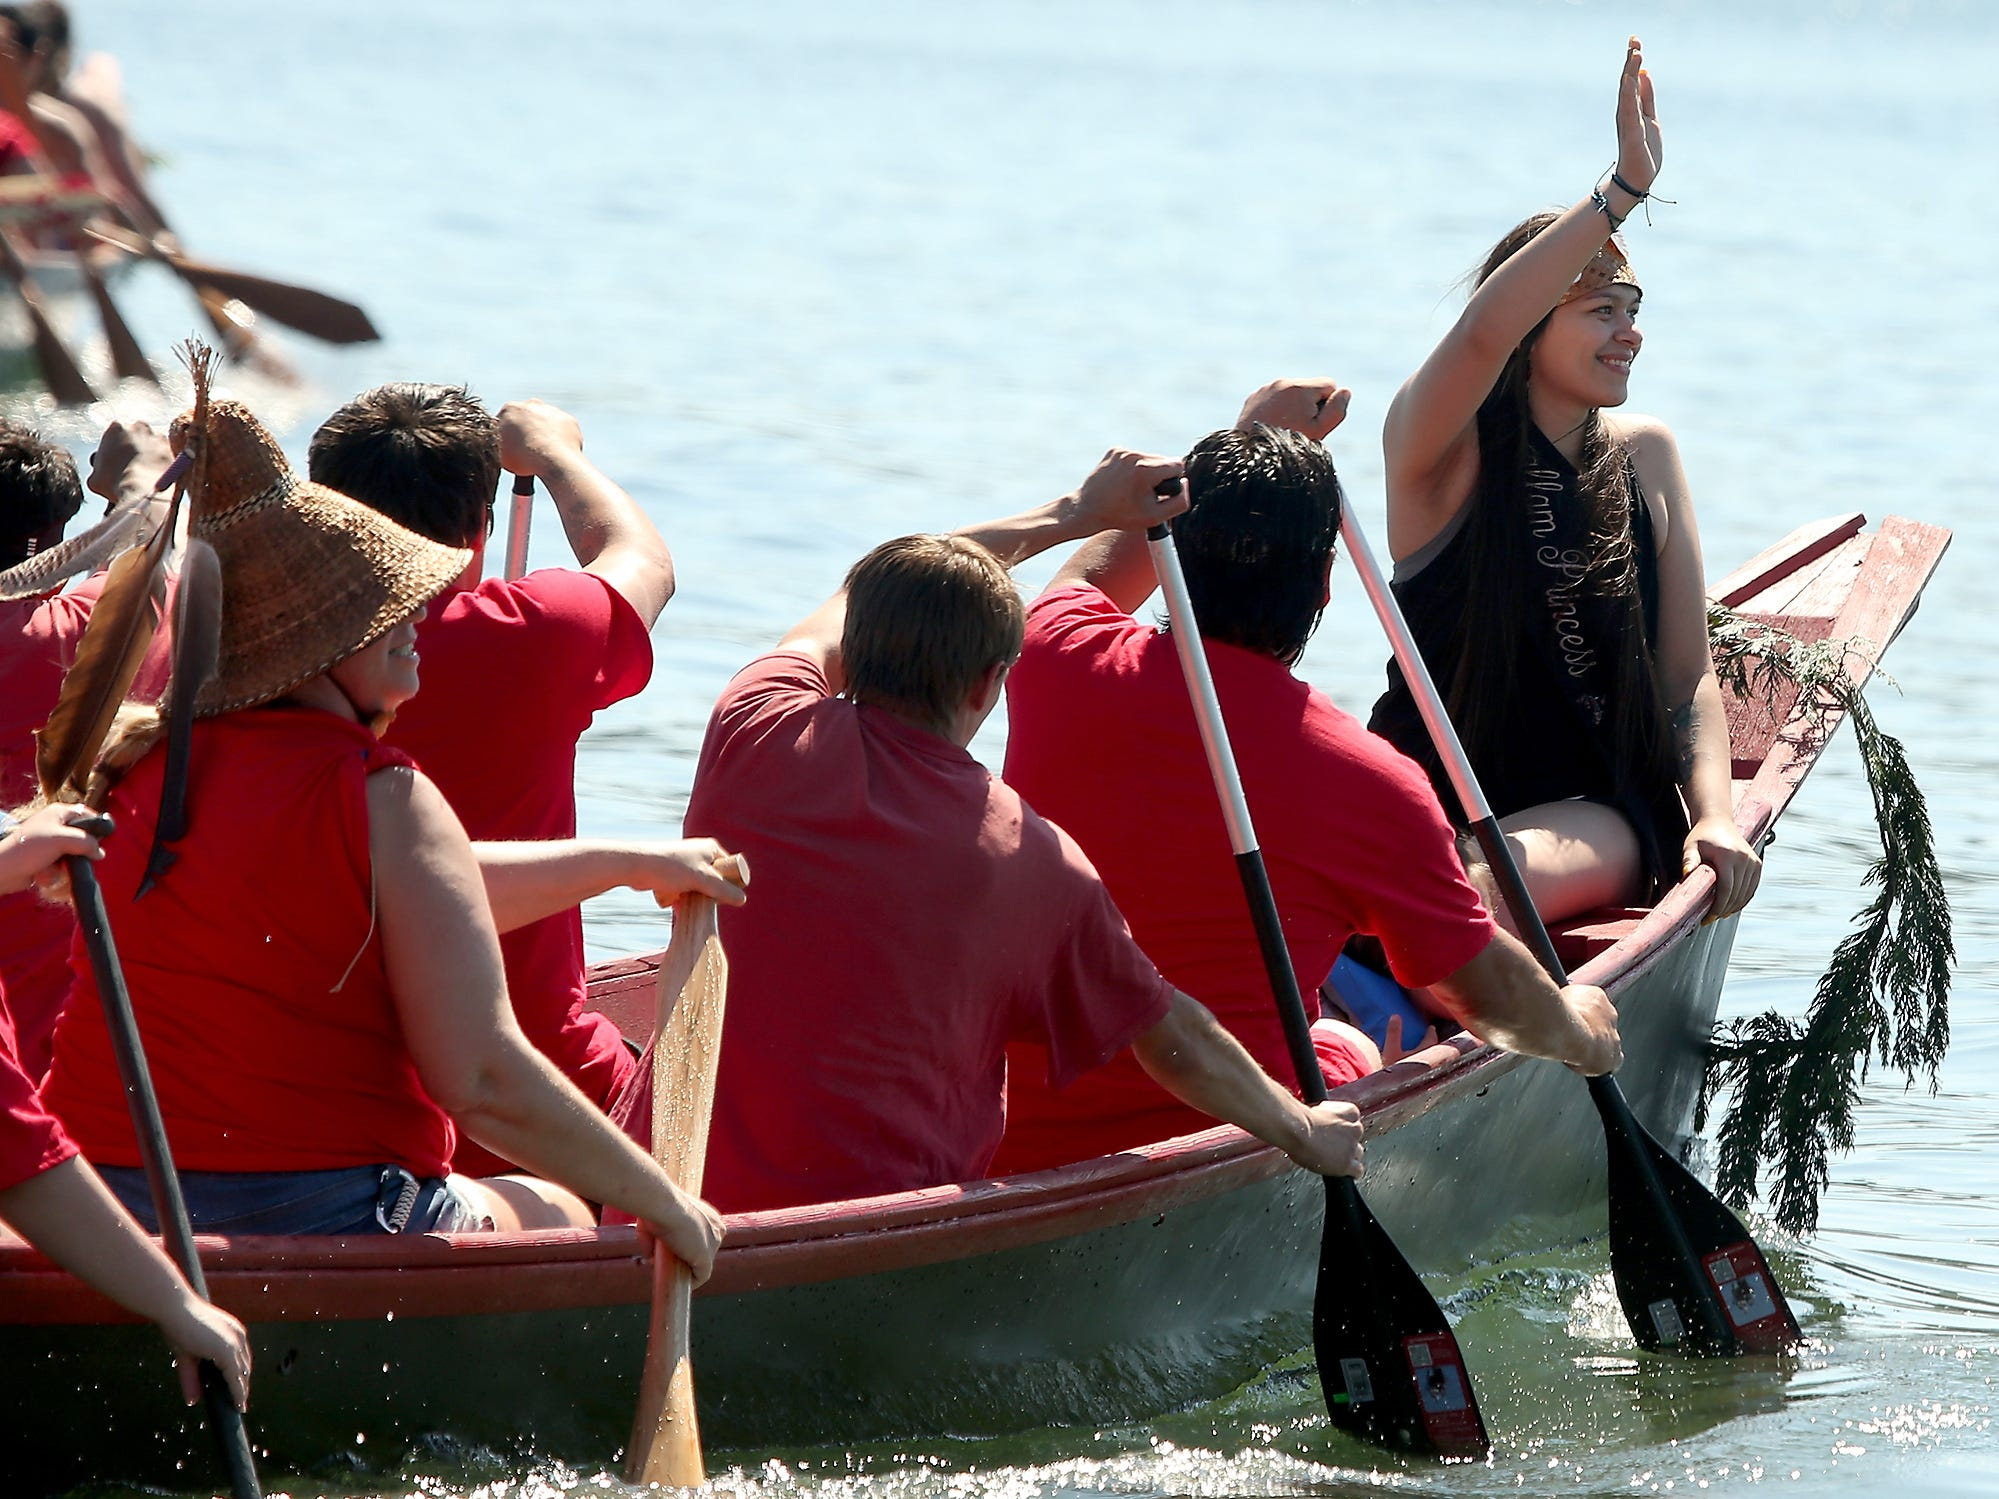 """Senior Miss S'Klallam Days Karleigh Gomez waves to those on shore as the Tribal Canoe Journey """"Paddle to Puyallup"""" lands at Point Julia on Tuesday, July 24, 2018."""